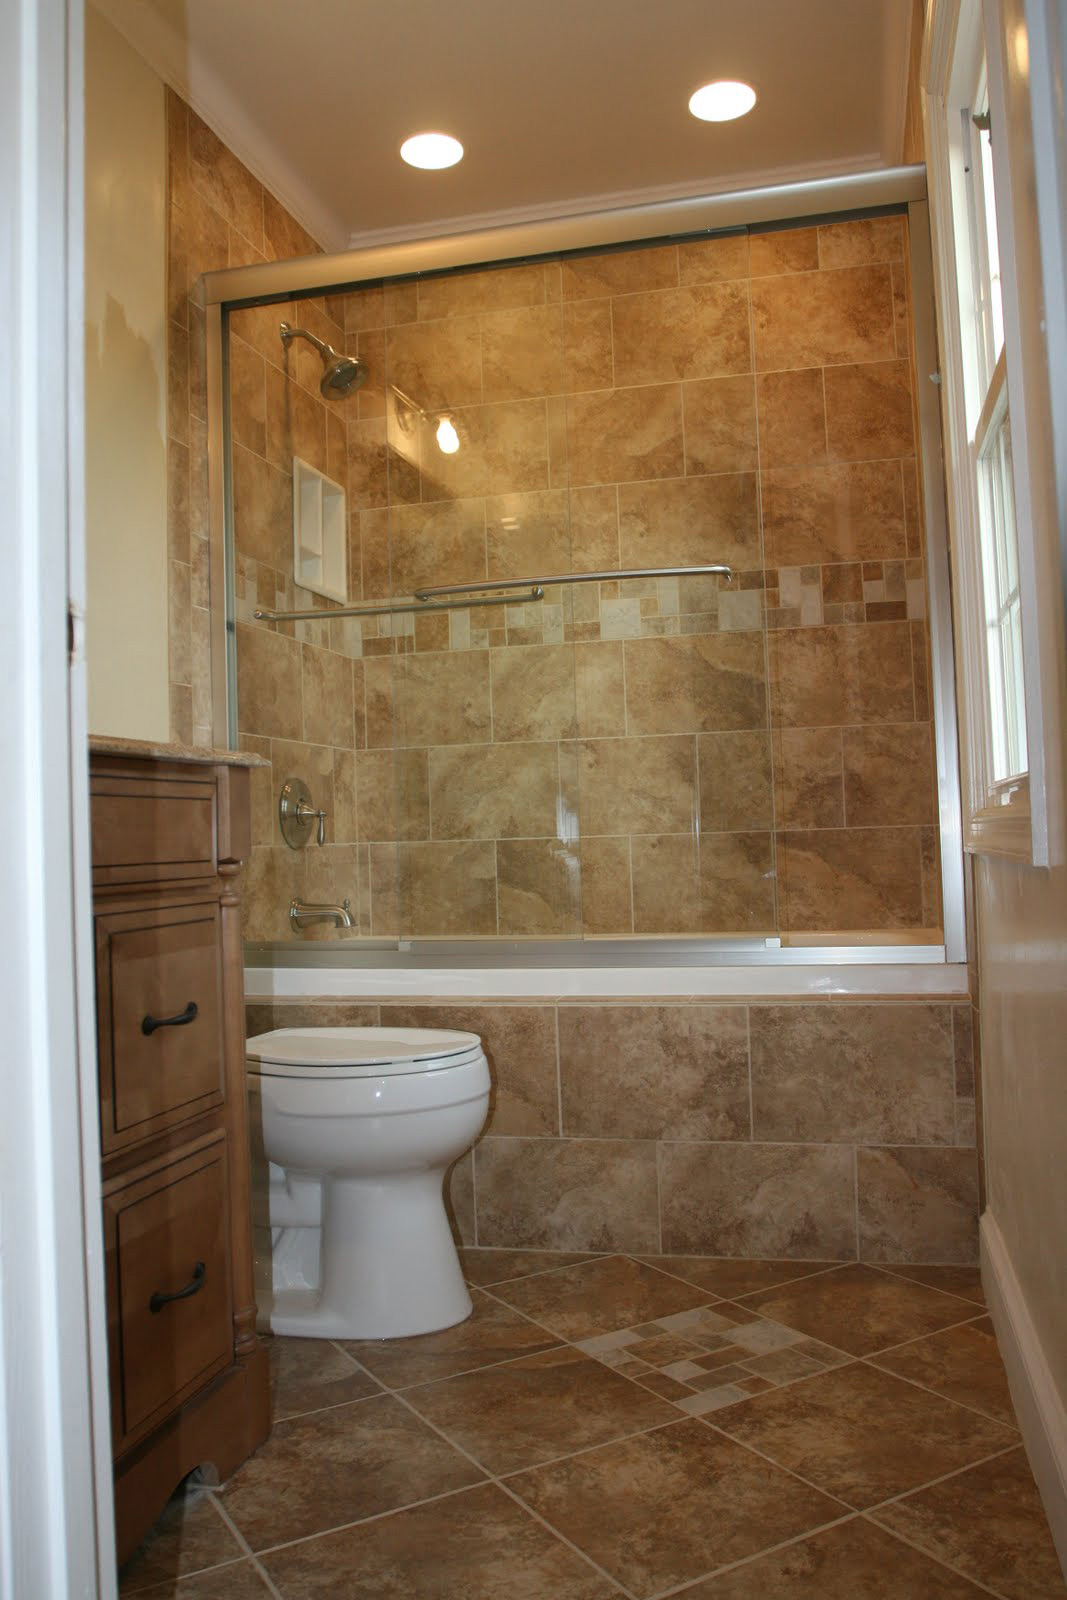 small bathroom ideas on a budget - large and beautiful photos